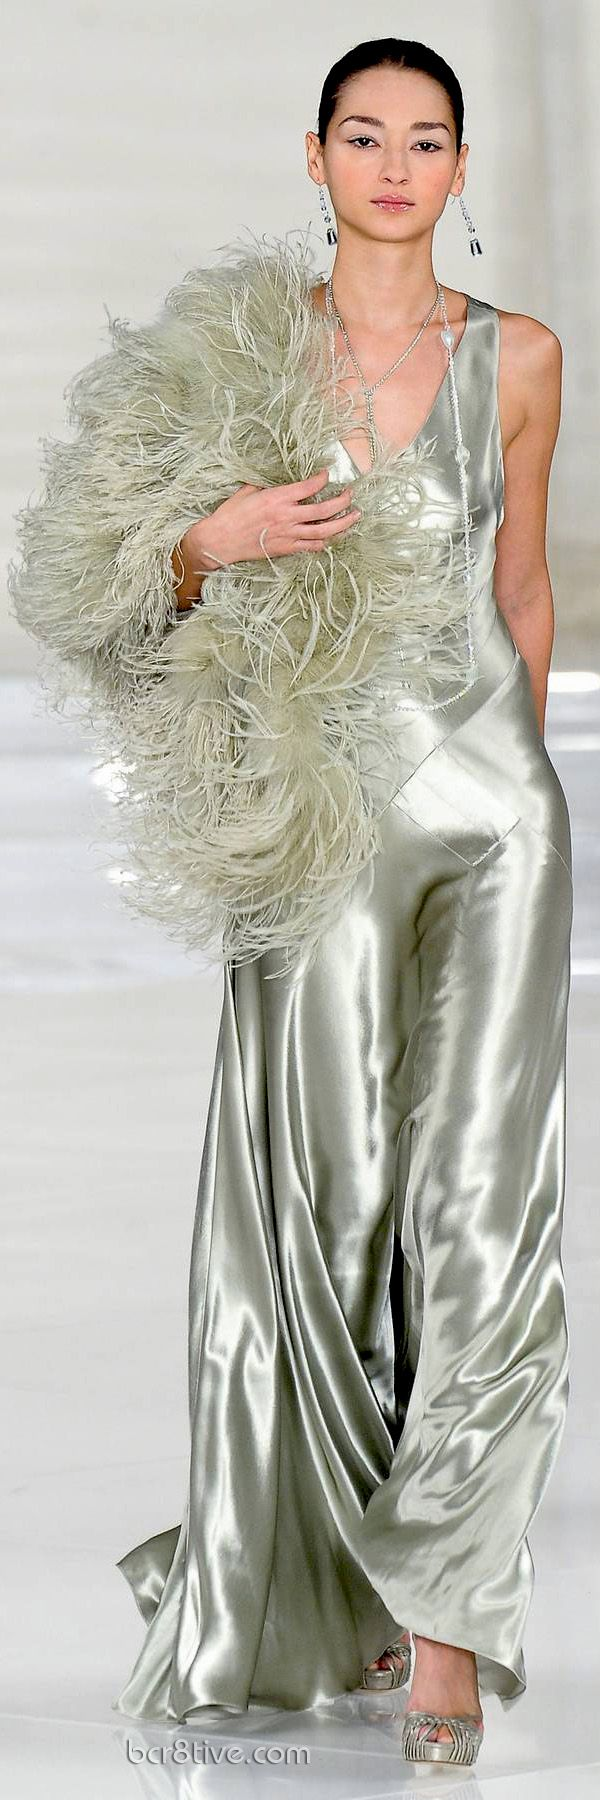 This is a collection of full length runway fashion photos from the esteemed Designer, Ralph Lauren. Commemorating a gorgeous & memorable collection from his Spring Summer 2012 Collection.